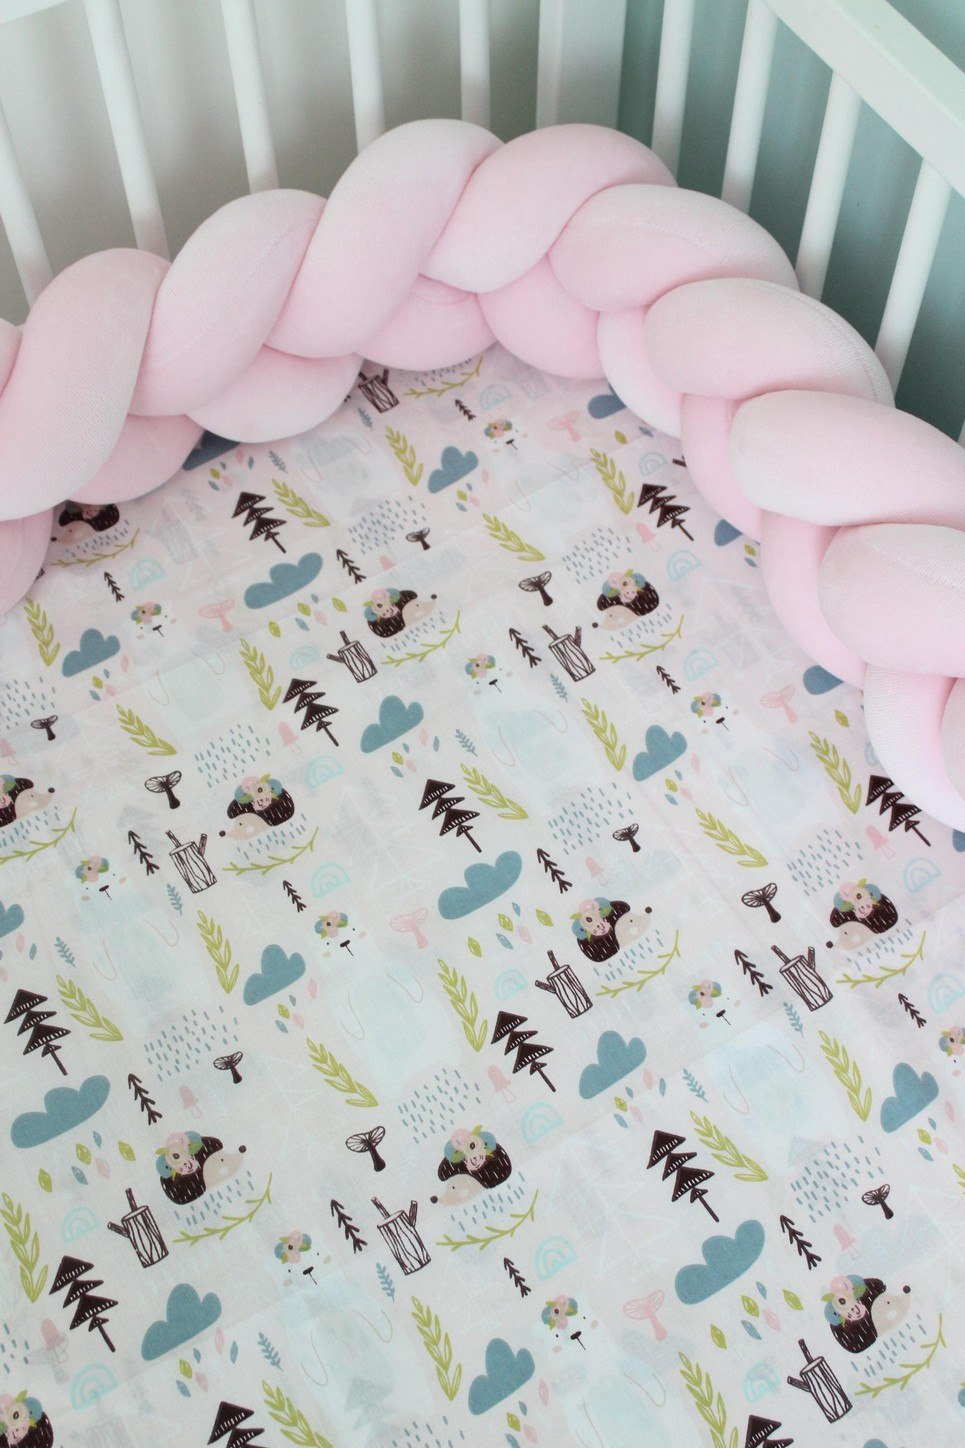 Teddy Bears and Hedgehogs Fitted Crib Sheet